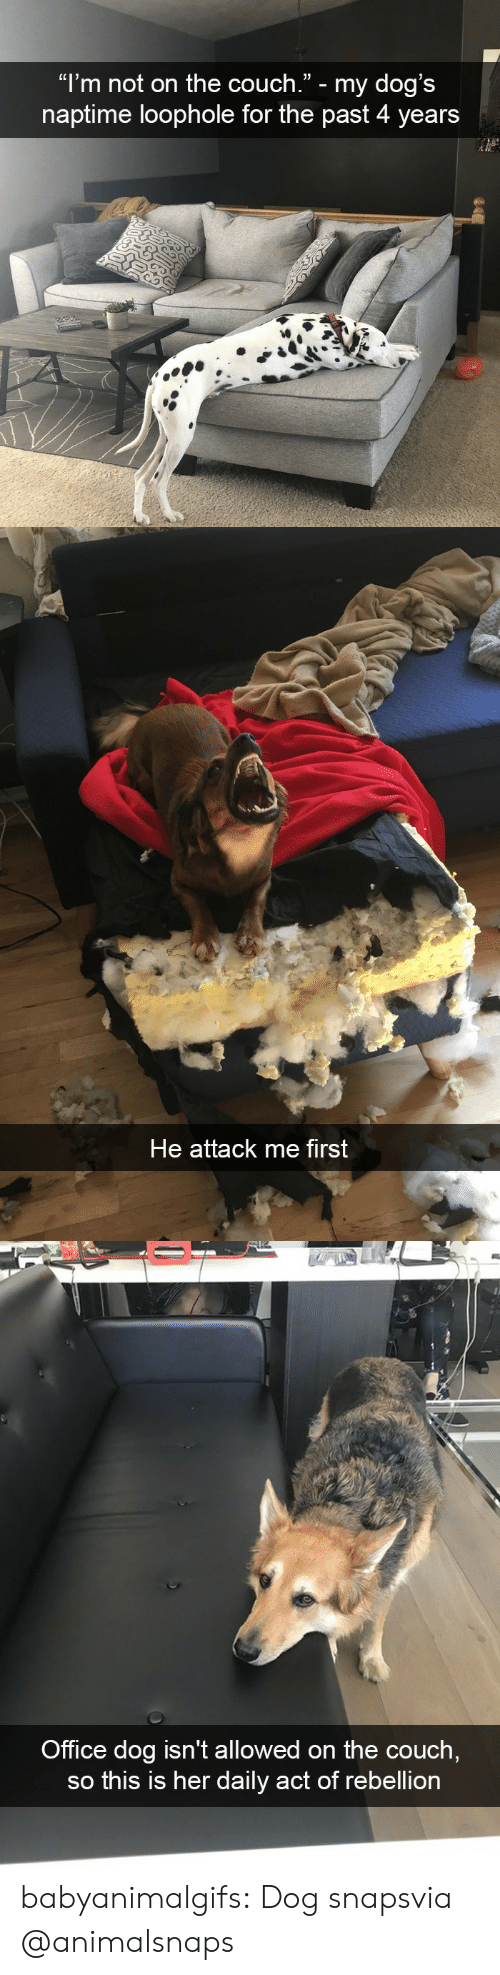 """Dogs, Tumblr, and Blog: """"l'm not on the couch."""" - my dog's  naptime loophole for the past 4 years   He attack me first   Office dog isn't allowed on the couch  so this is her daily act of rebellion babyanimalgifs:  Dog snapsvia @animalsnaps"""